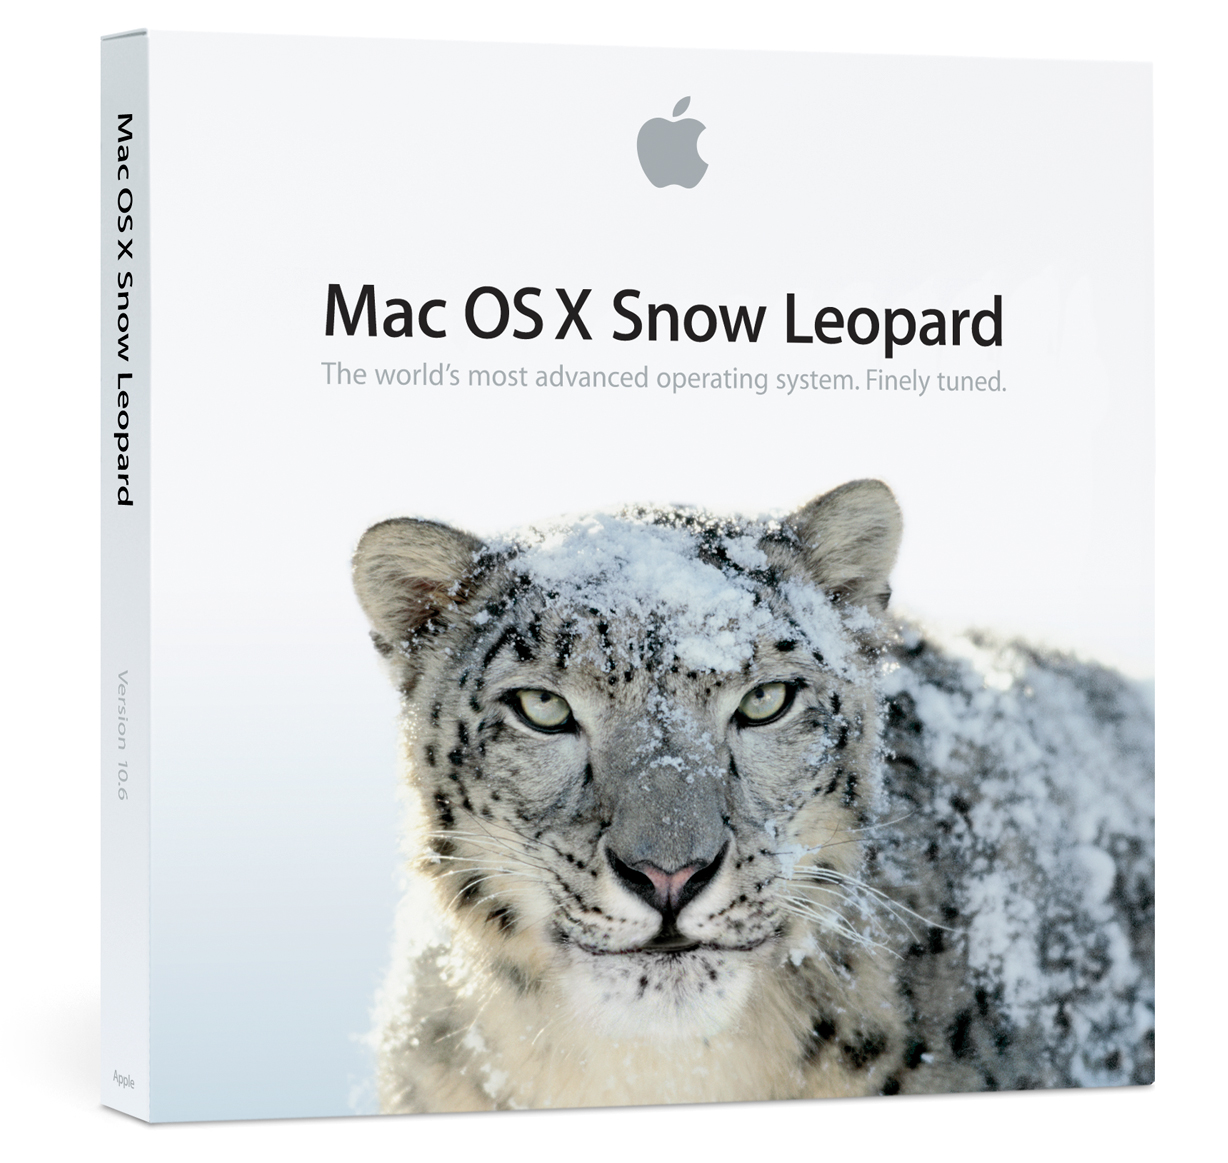 Caixa do Mac OS X 10.6 Snow Leopard